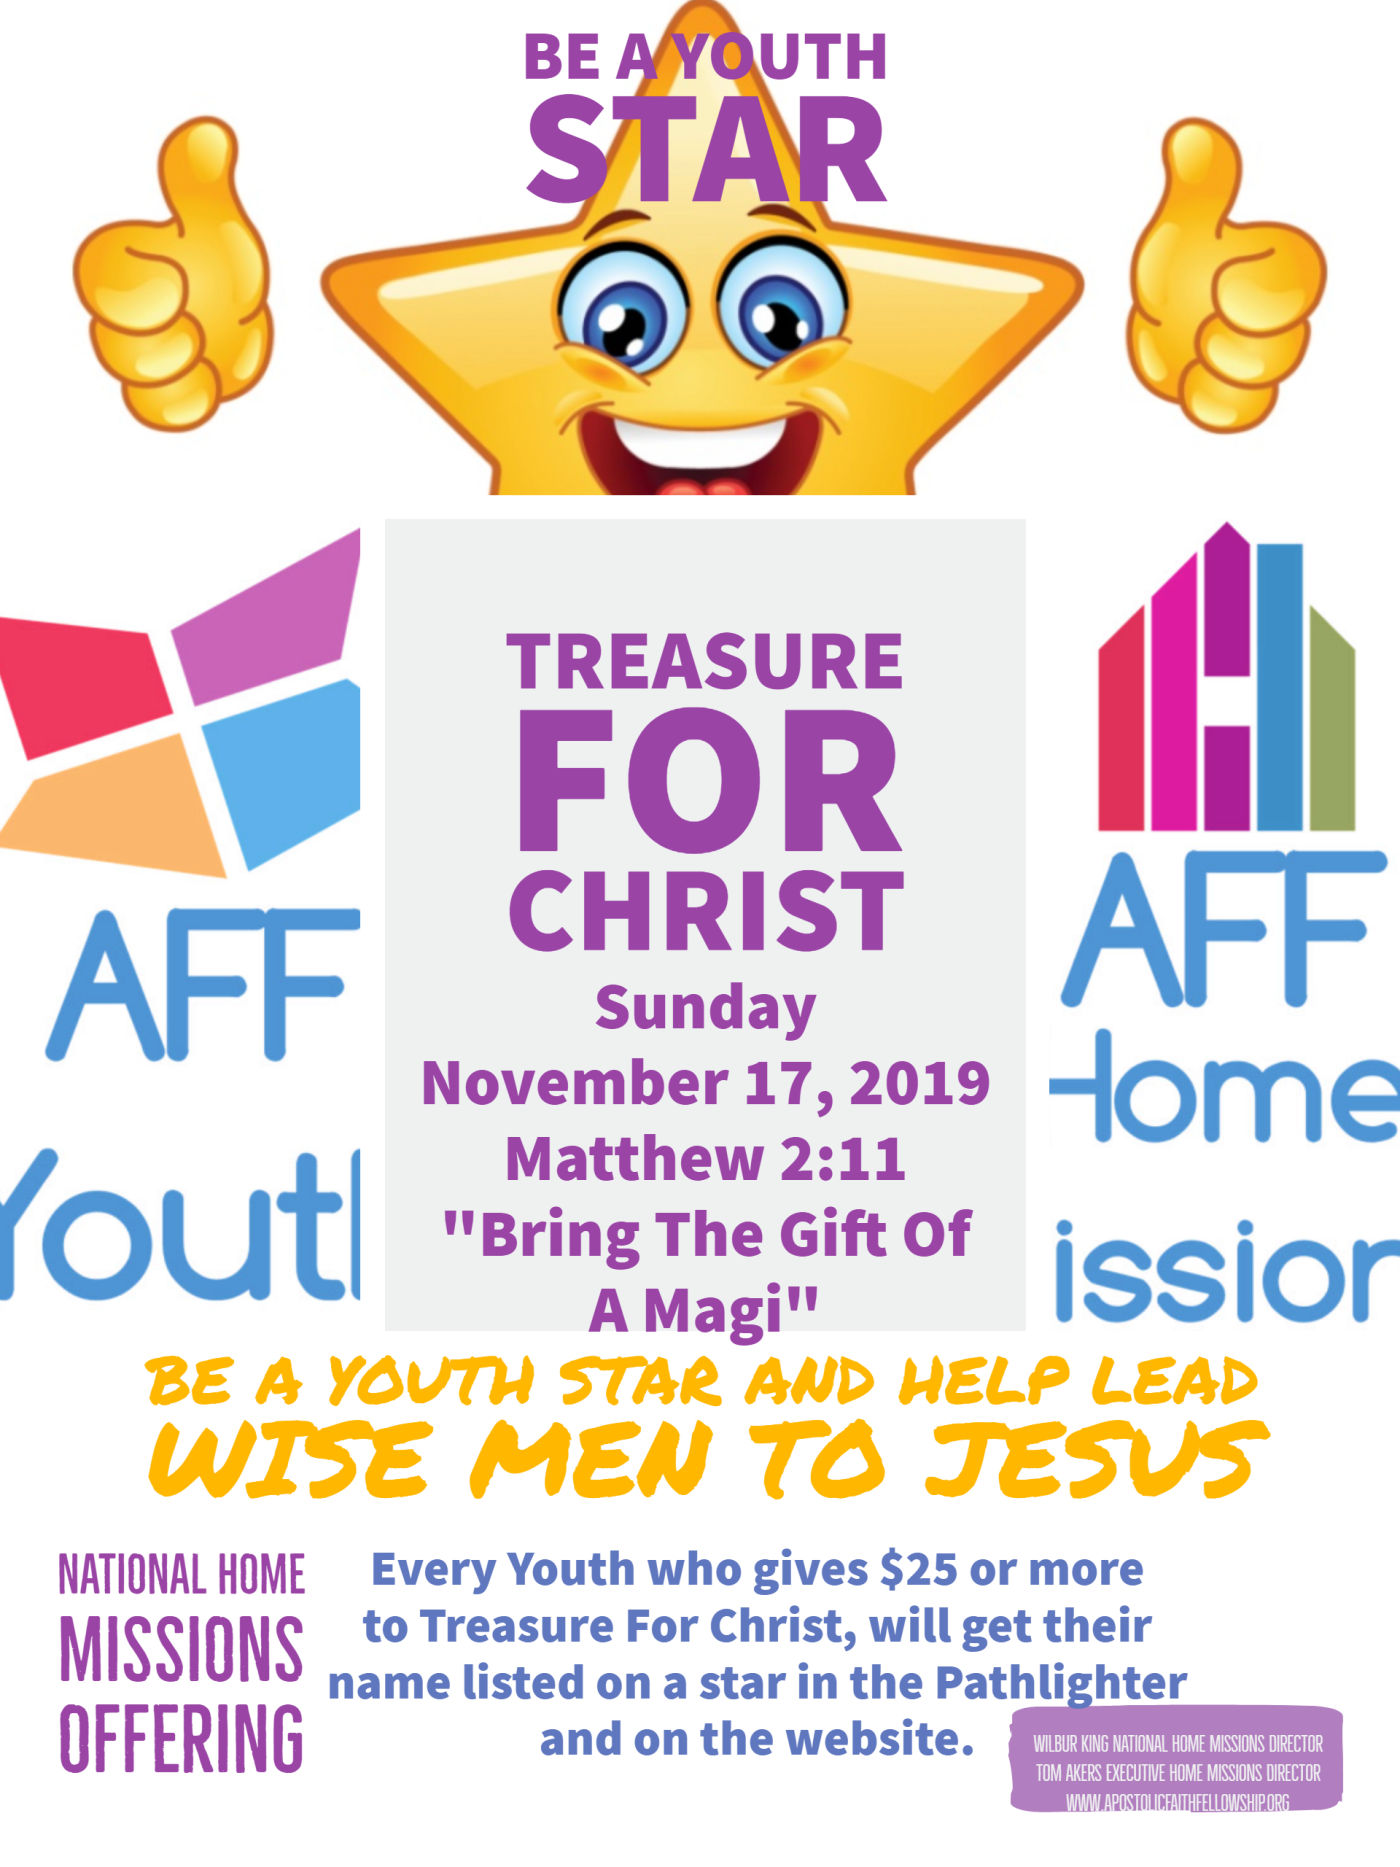 Aff Home Missions